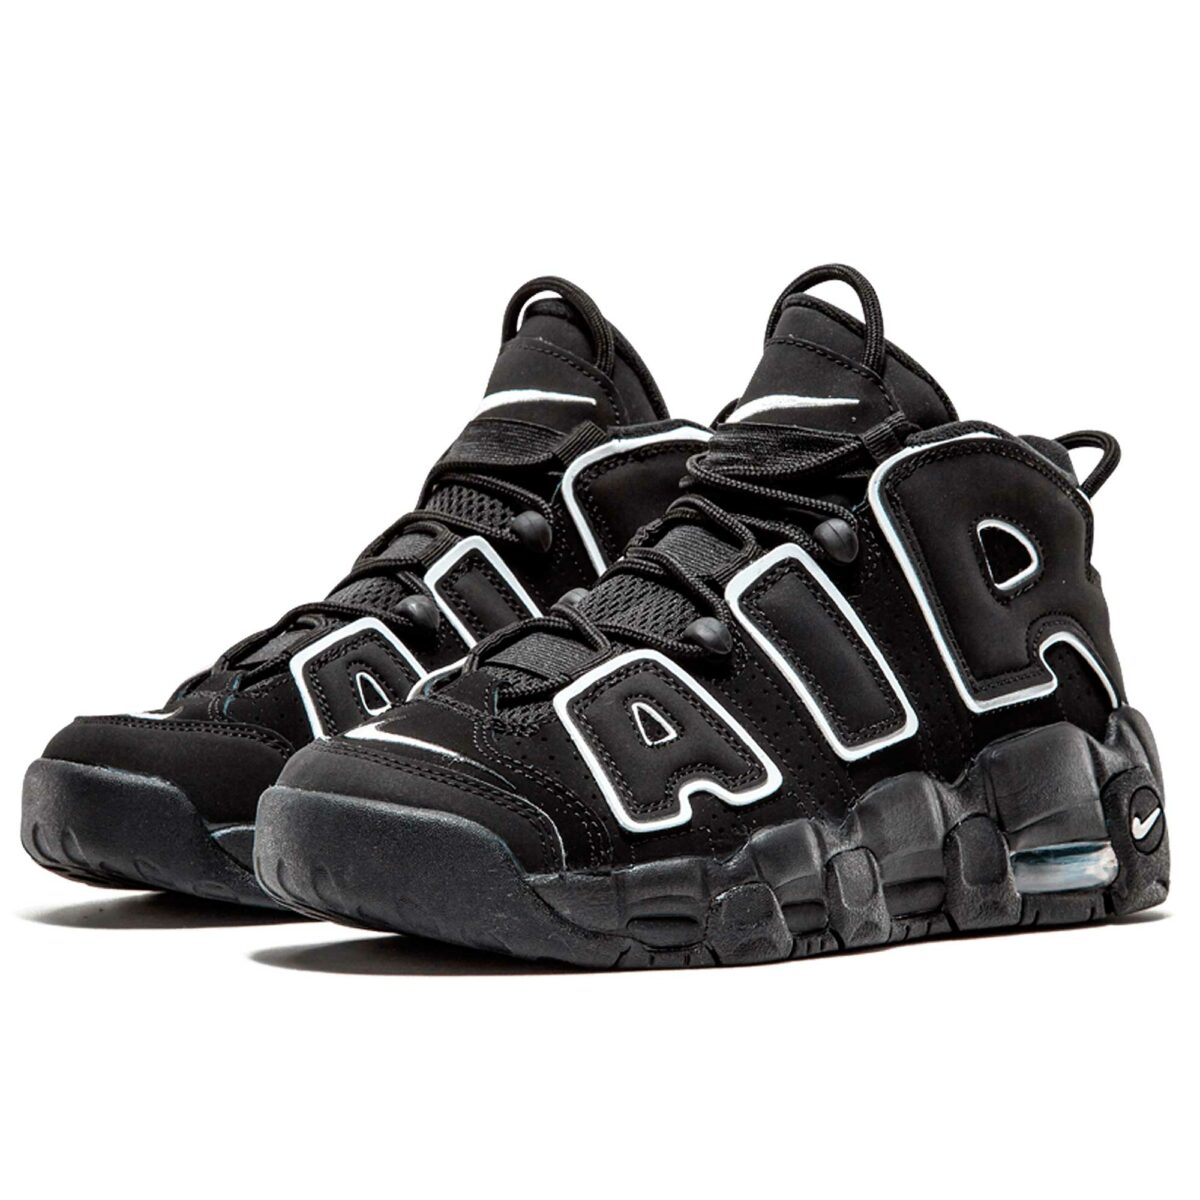 nike air more uptempo GS black white 415082-002 купить